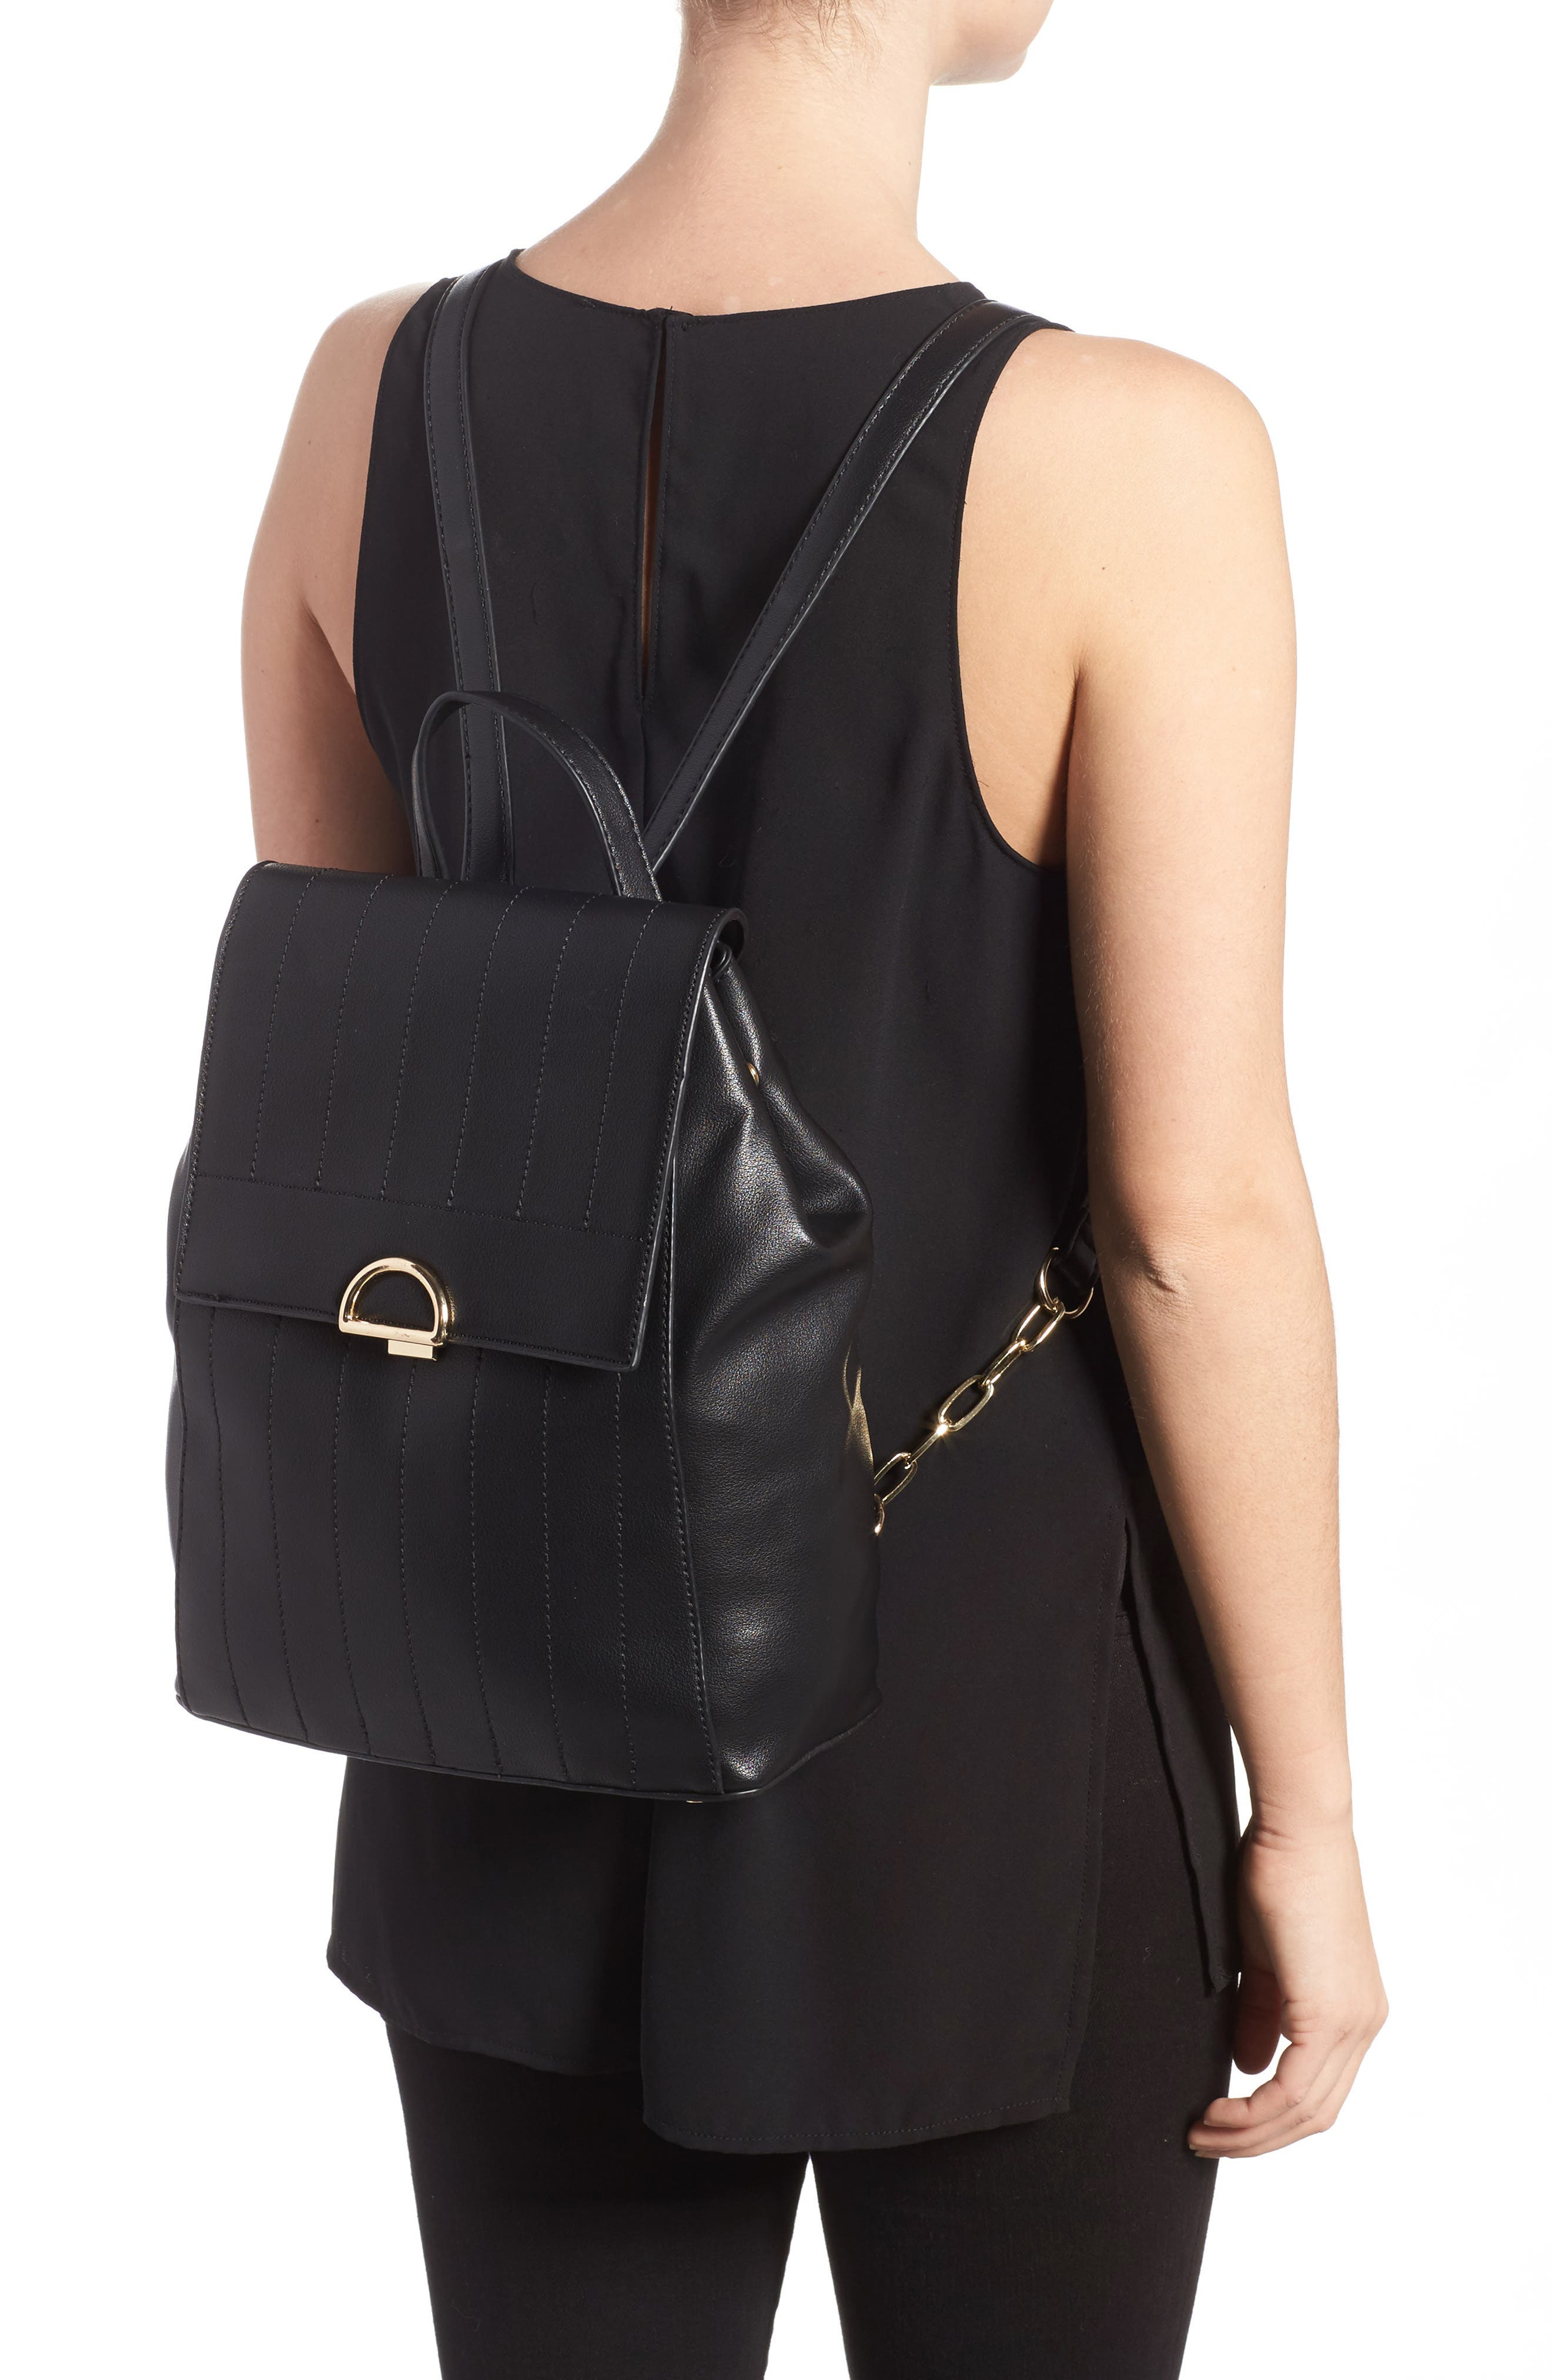 Zilo Quilted Faux Leather Backpack,                             Alternate thumbnail 2, color,                             Black